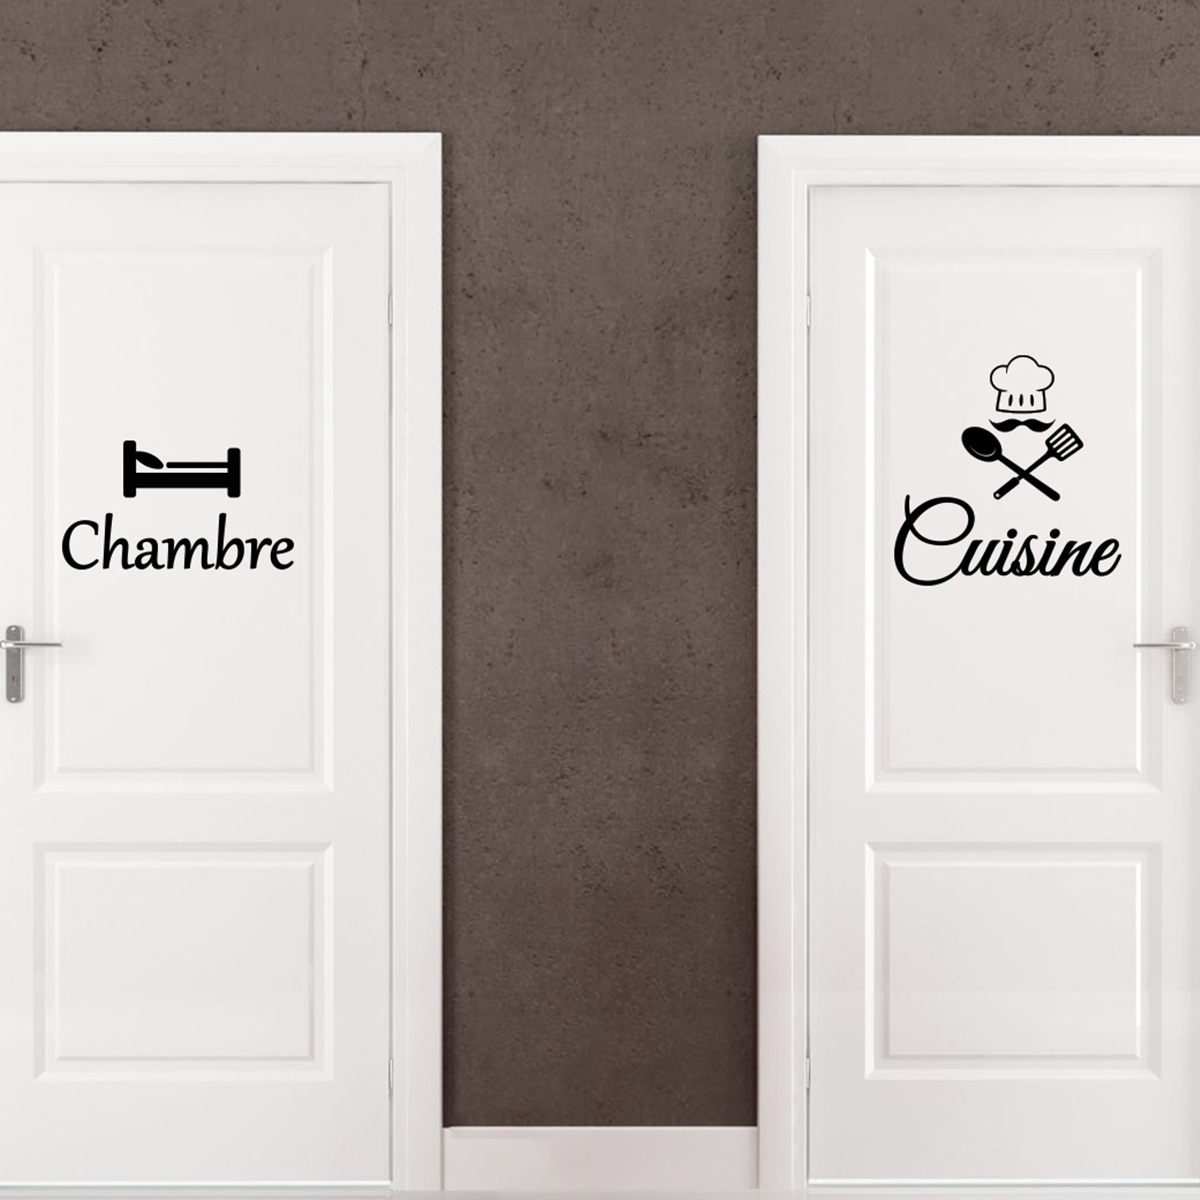 sticker porte cuisine chambre stickers cuisine textes et recettes ambiance sticker. Black Bedroom Furniture Sets. Home Design Ideas